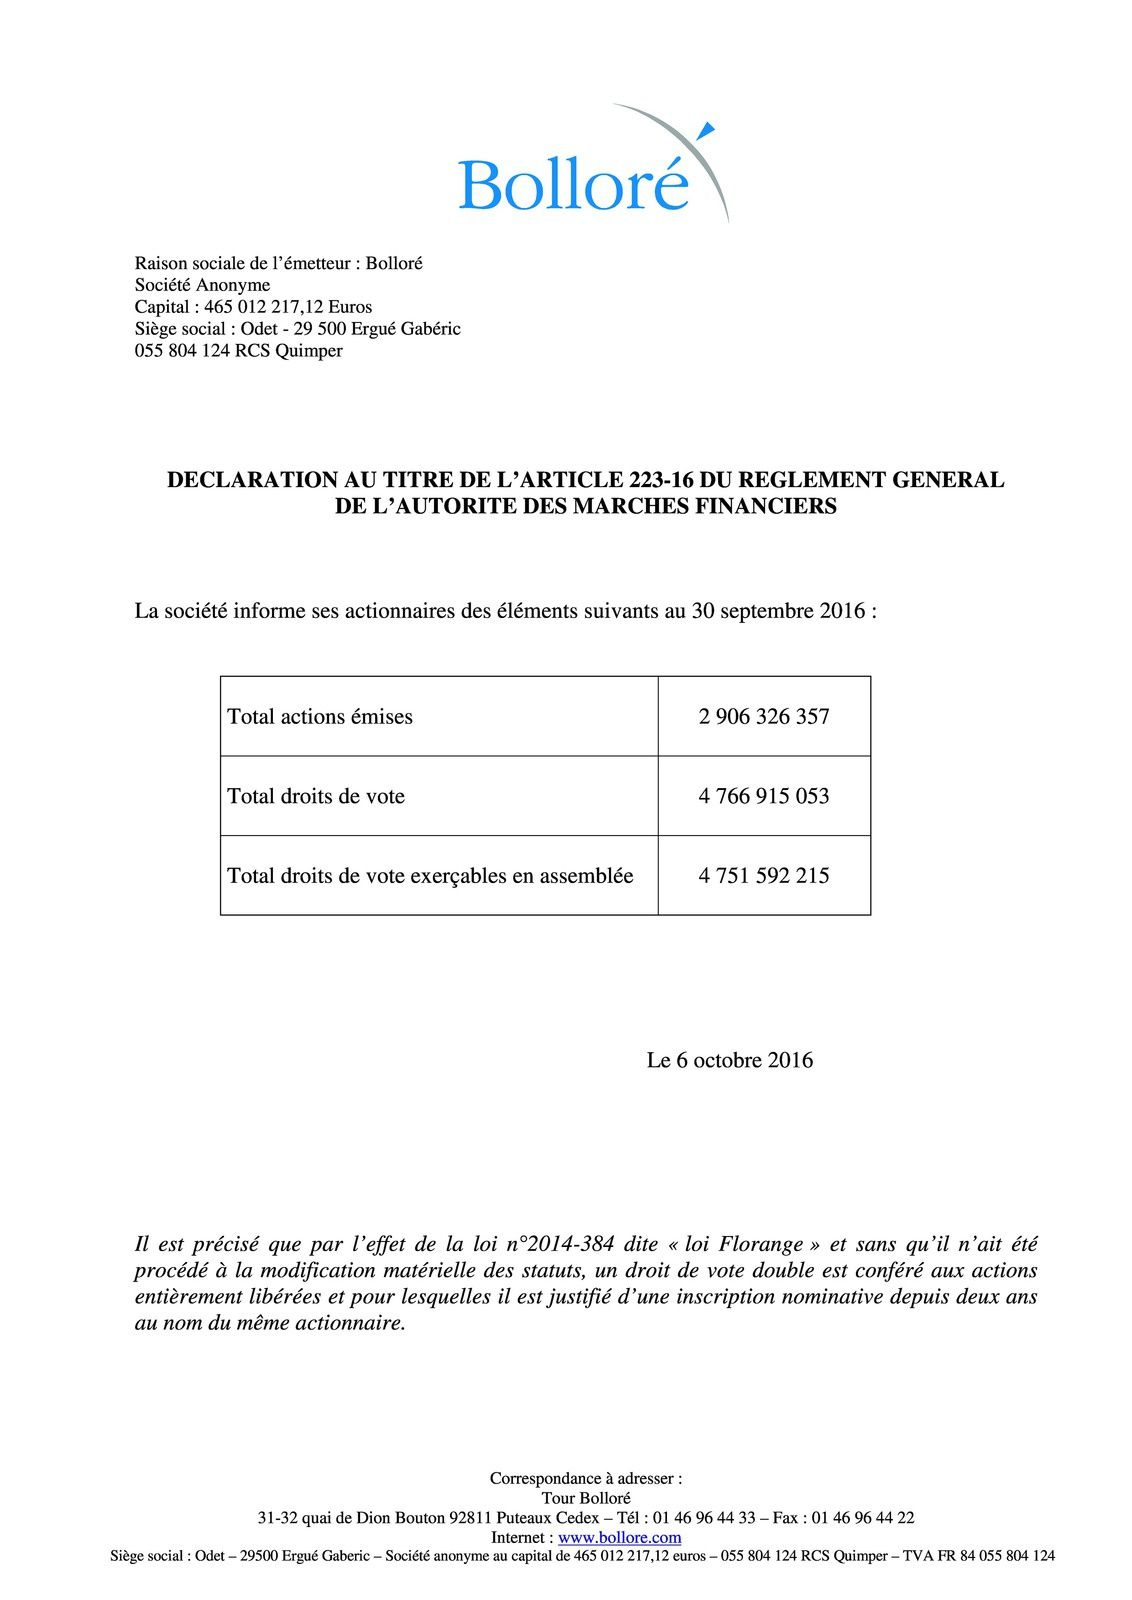 DECLARATION AU TITRE DE L'ARTICLE 223-16 DU REGLEMENT GENERAL